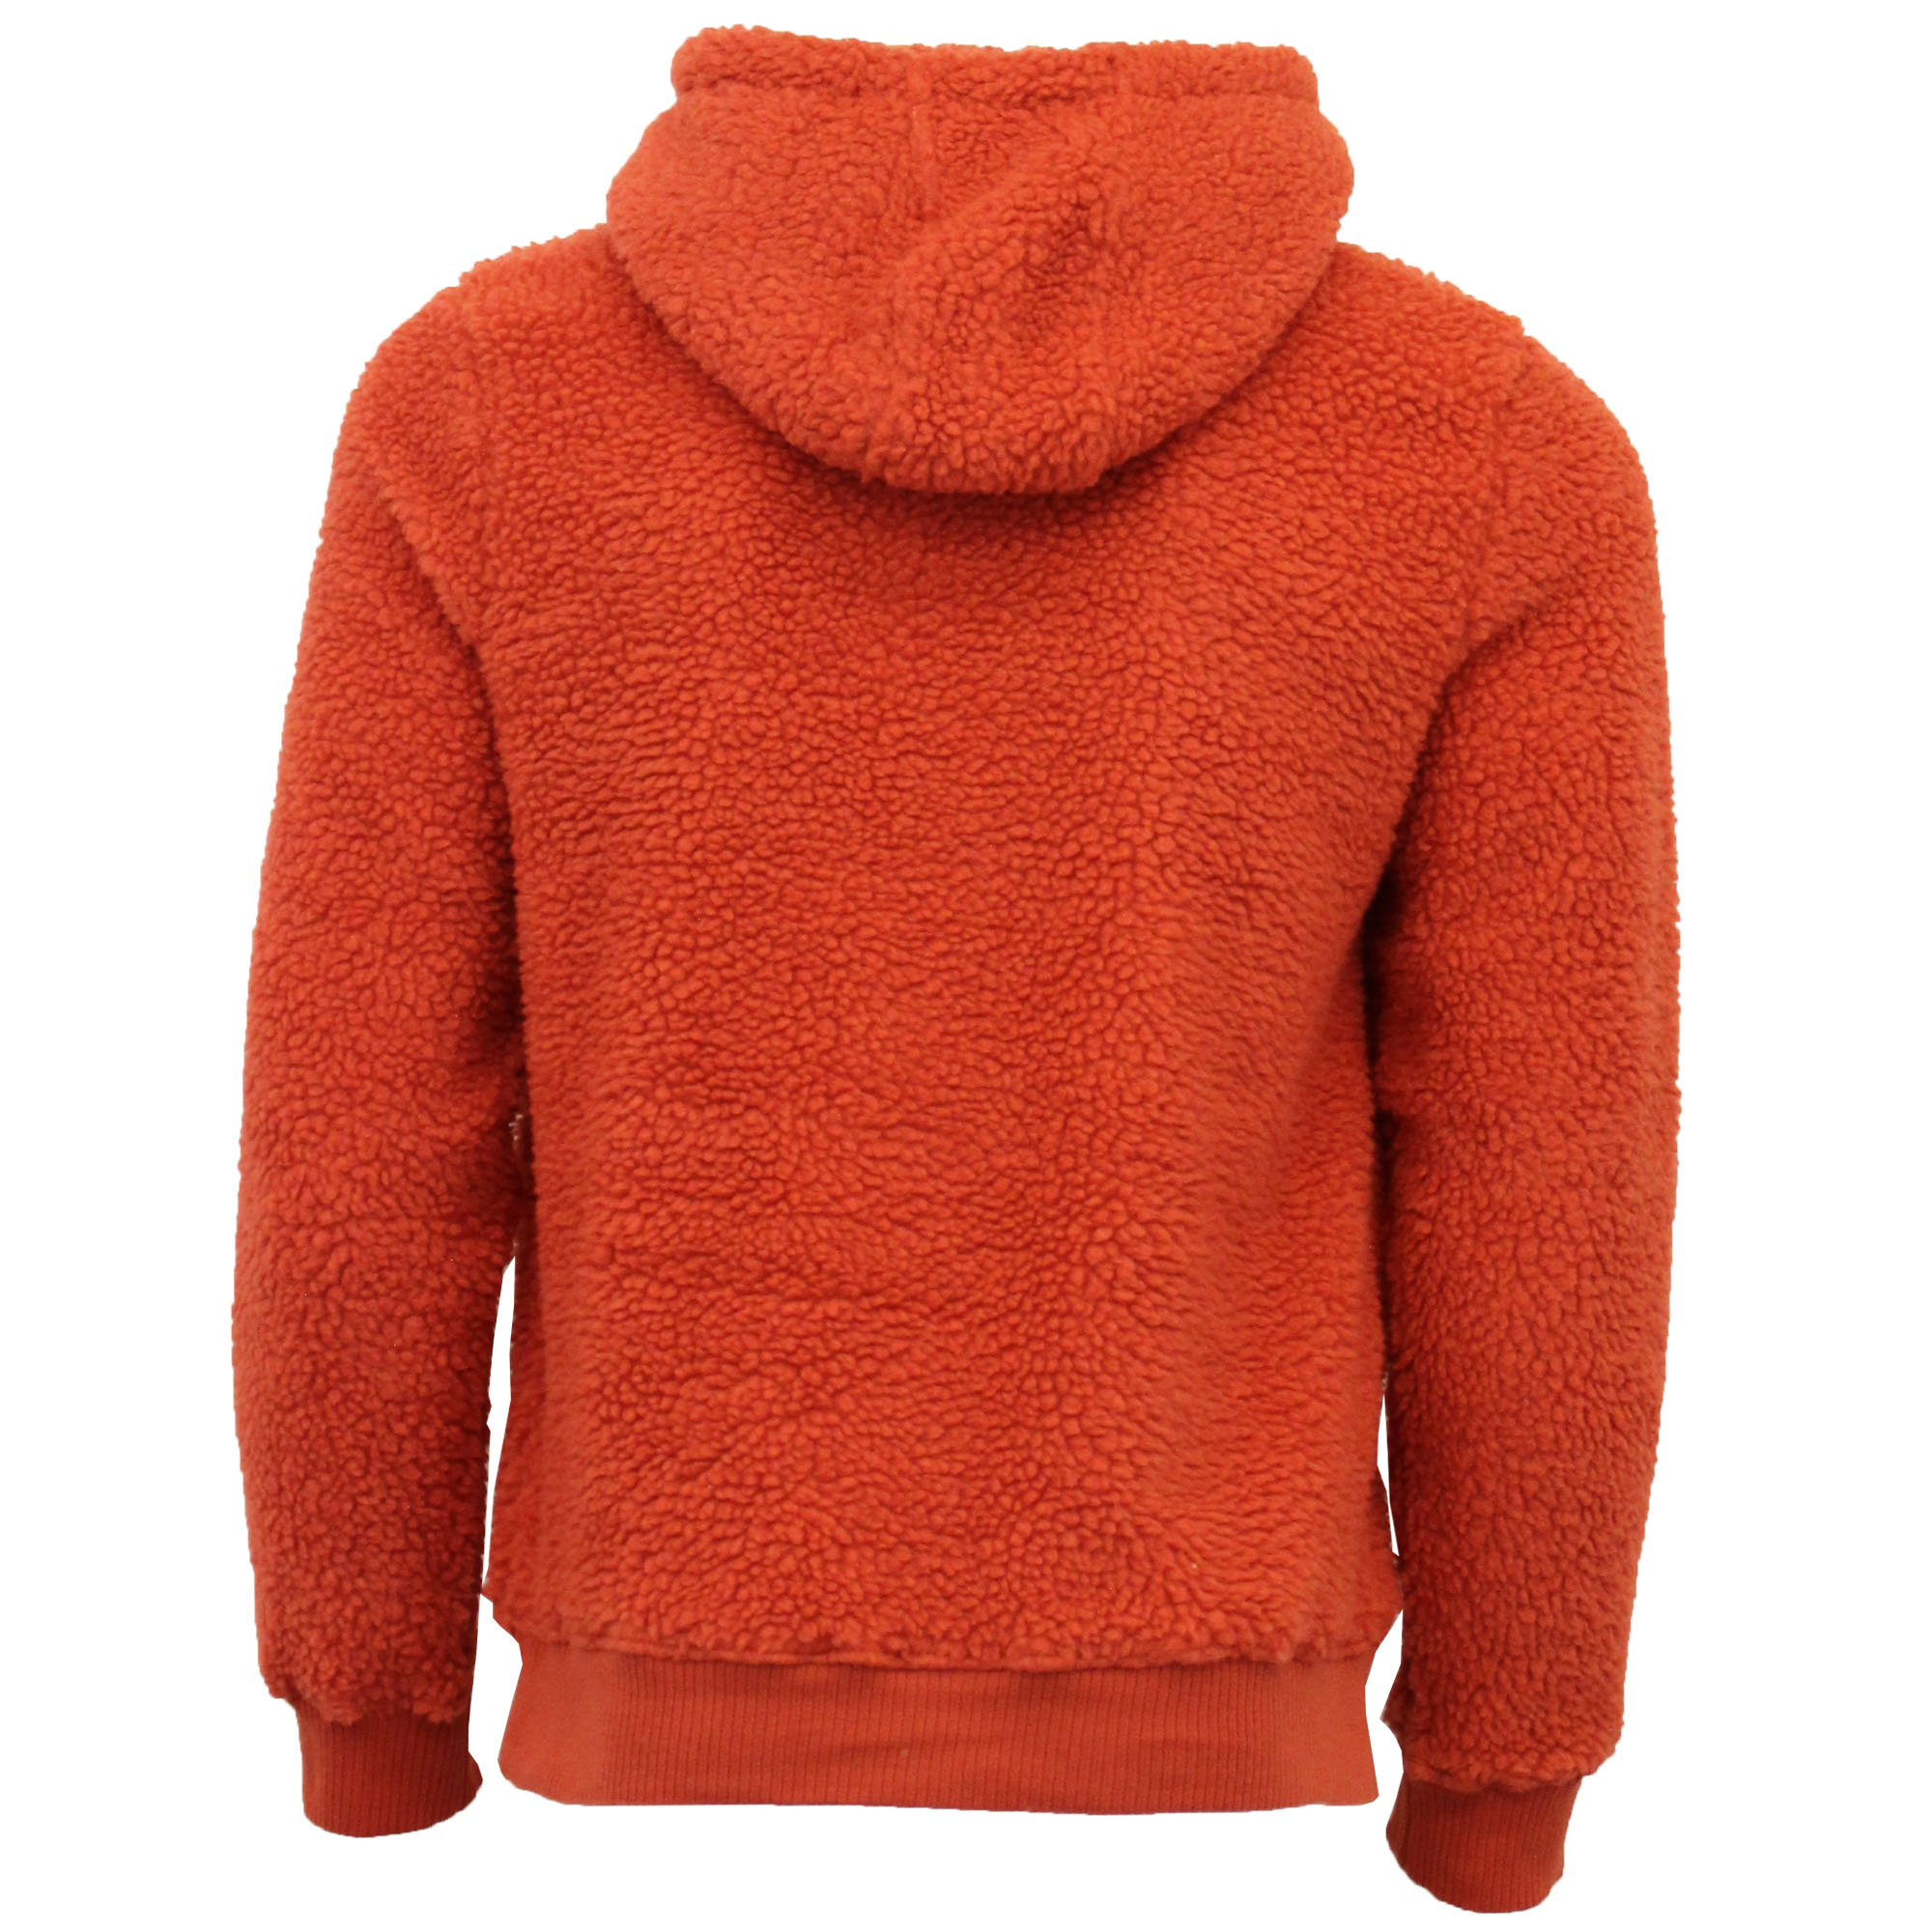 Mens-Borg-Sherpa-Fleece-Sweatshirt-Brave-Soul-DAIM-Over-The-Head-Hooded-Top-Warm thumbnail 15